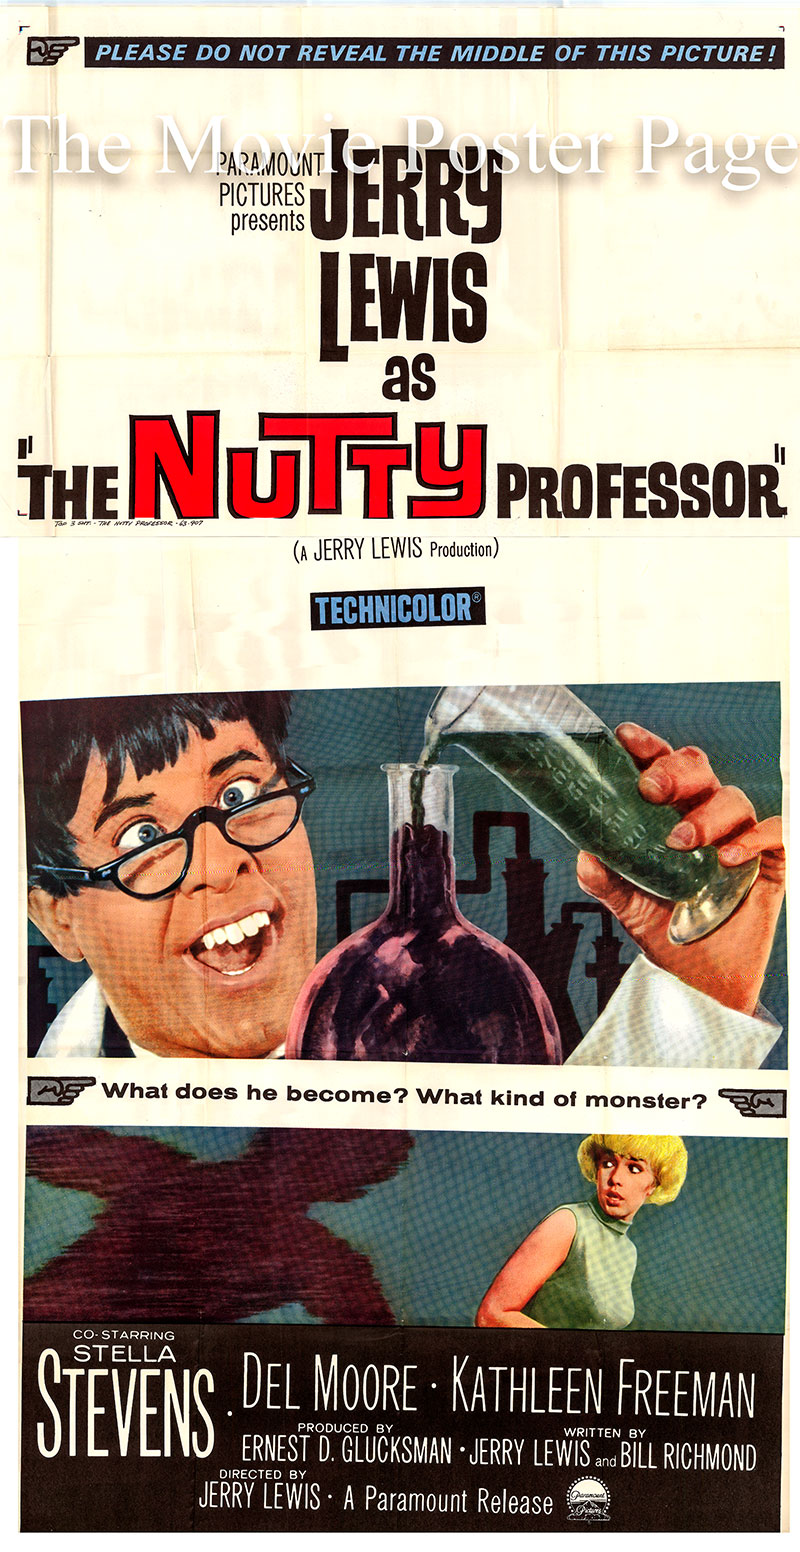 Pictured is a US one-sheet promotional poster for the 1966 Jerry Lewis film The Nutty Professor starring Jerry Lewis as Buddy Love.